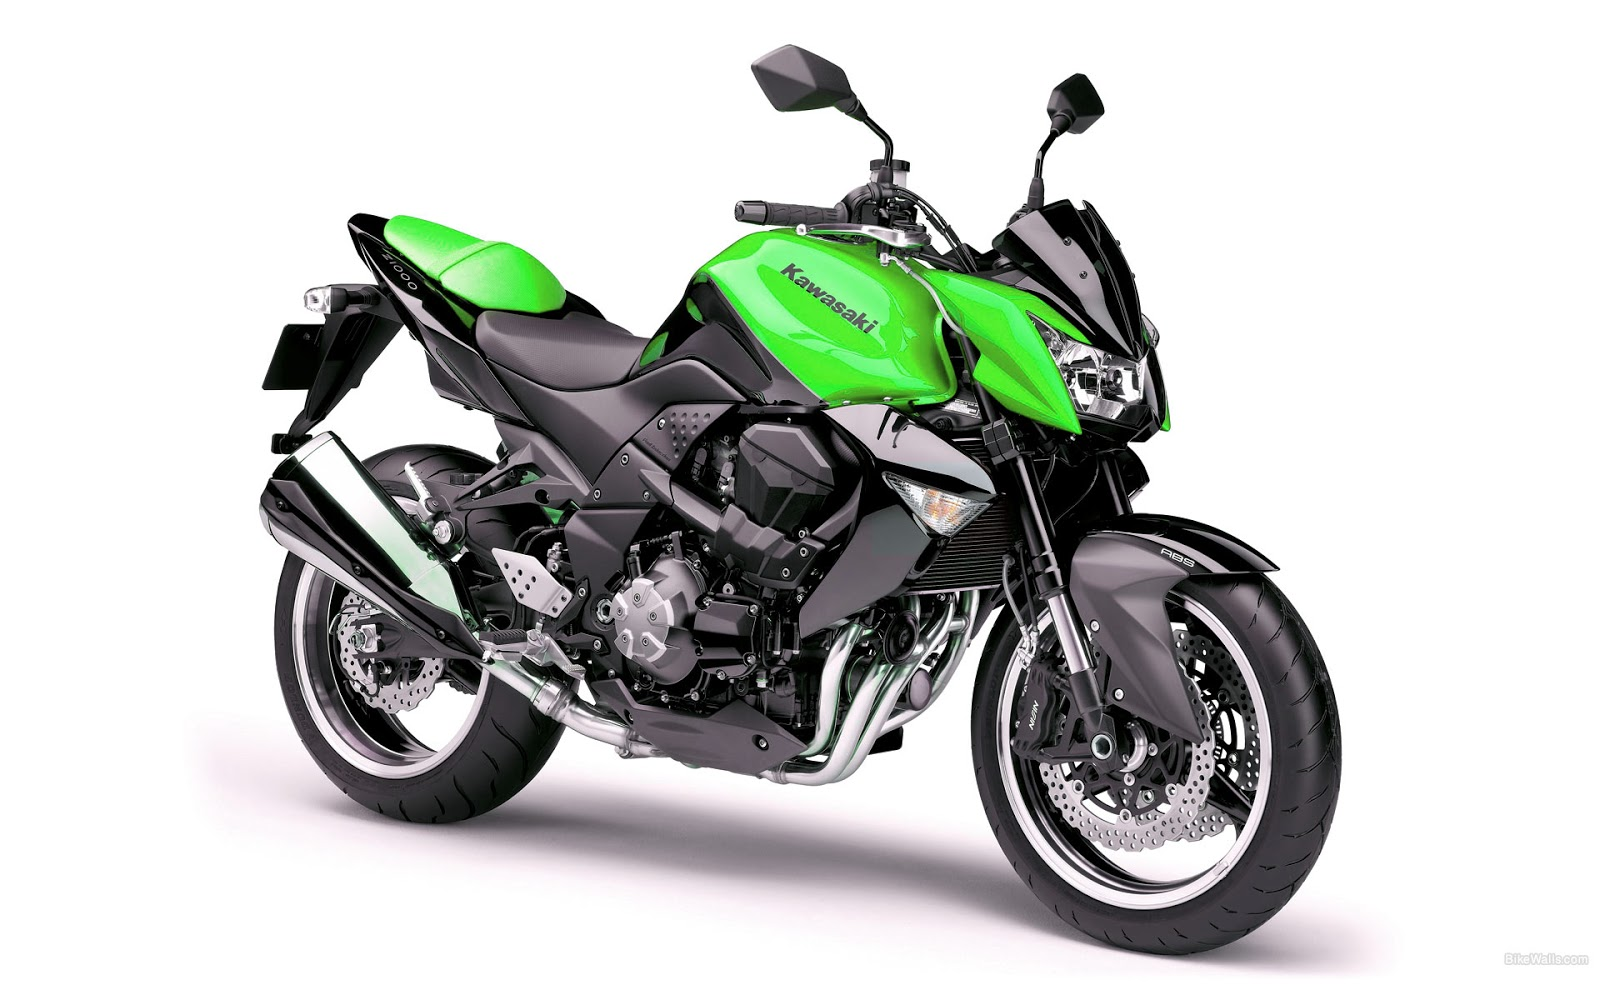 kawasaki z800 2013 hd wallpapers 2013 all about hd wallpapers. Black Bedroom Furniture Sets. Home Design Ideas